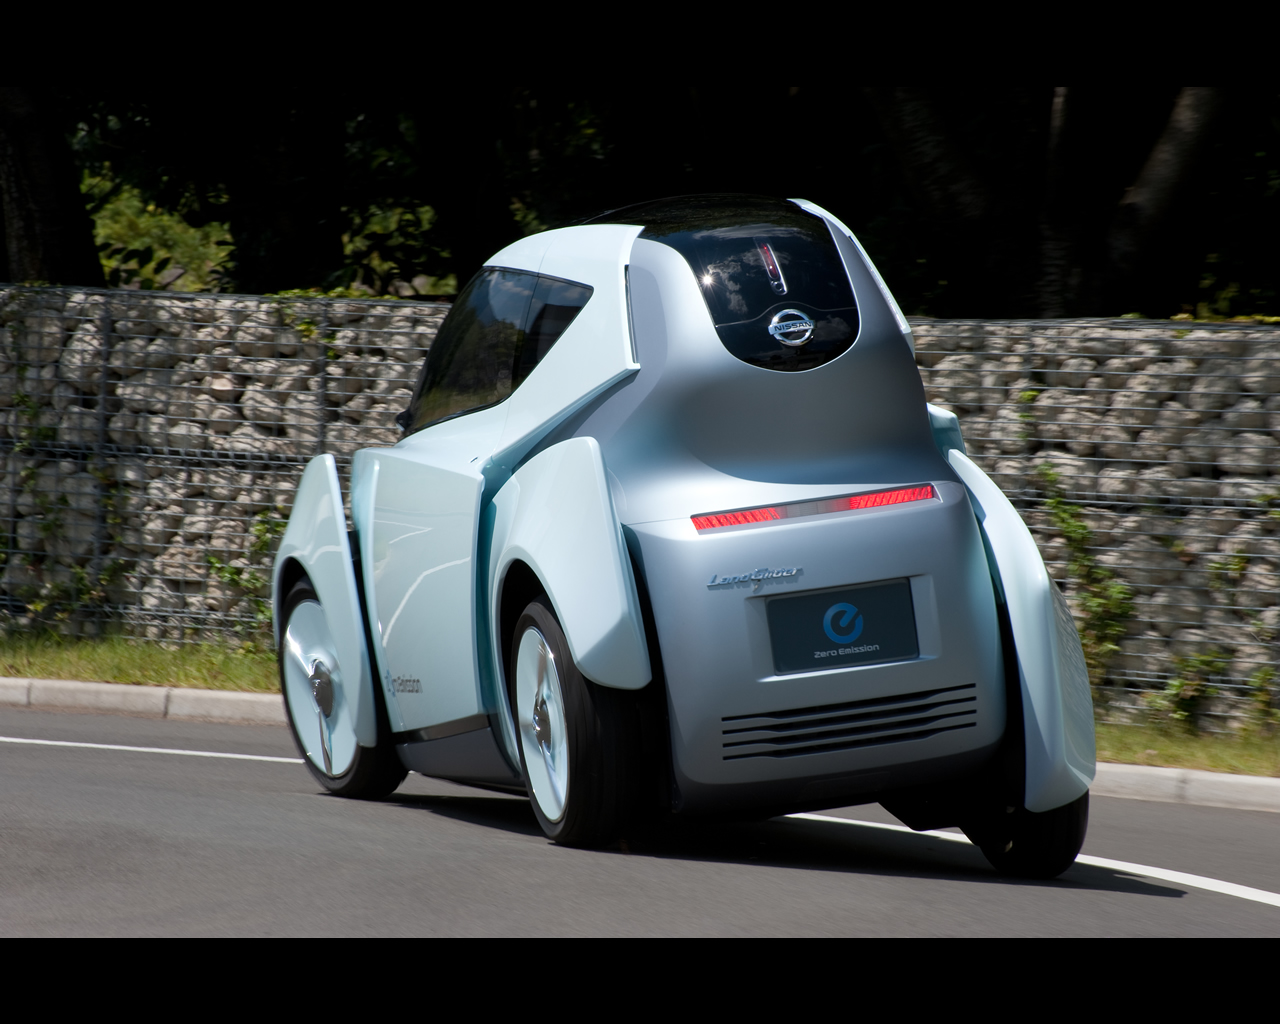 Nissan Land Glider Electric Urban Mobility Concept 2009